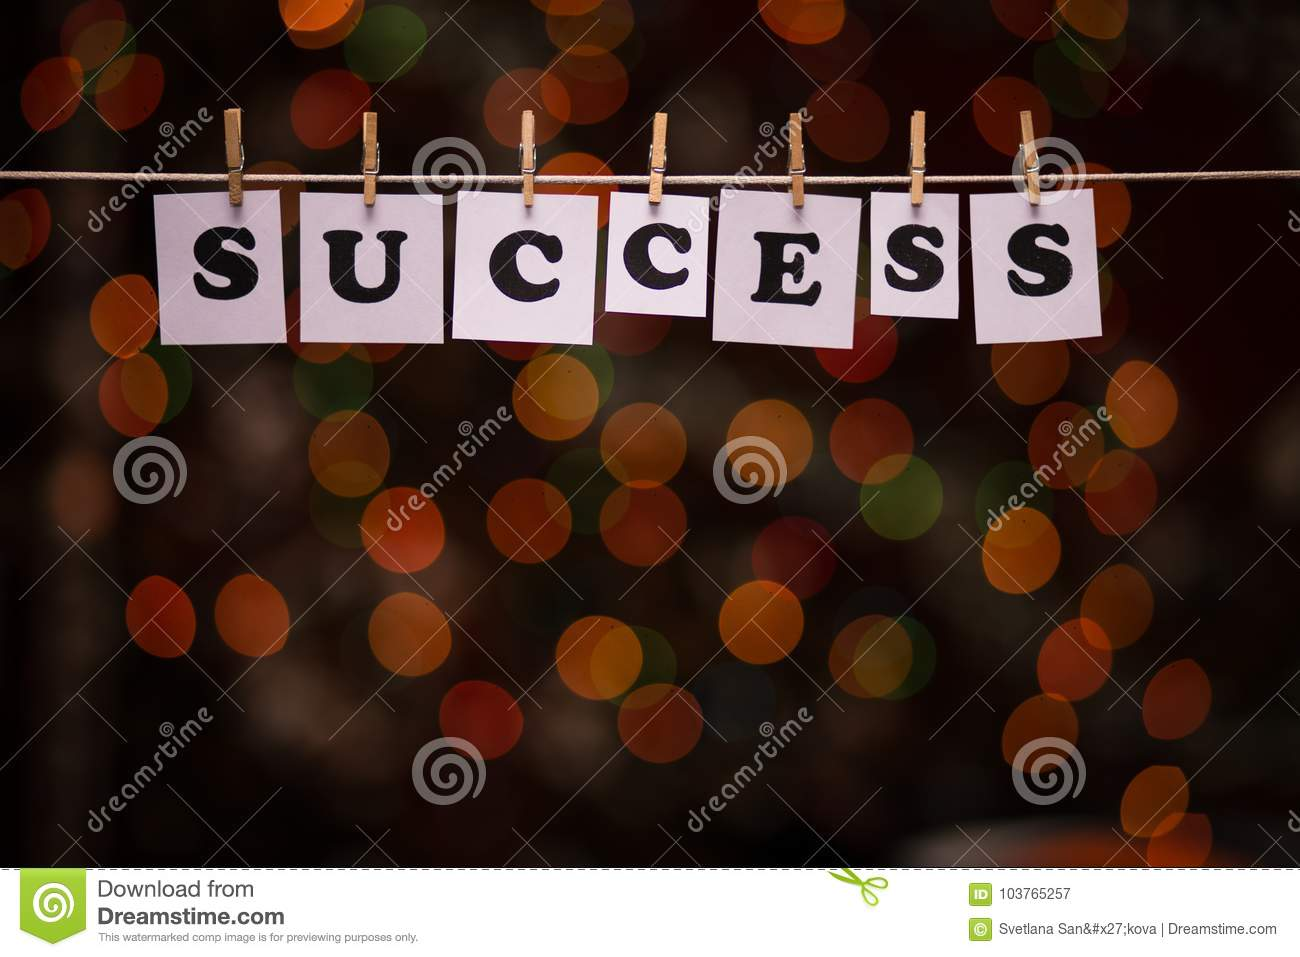 Success text on papers with clothespins with garland bokeh on background